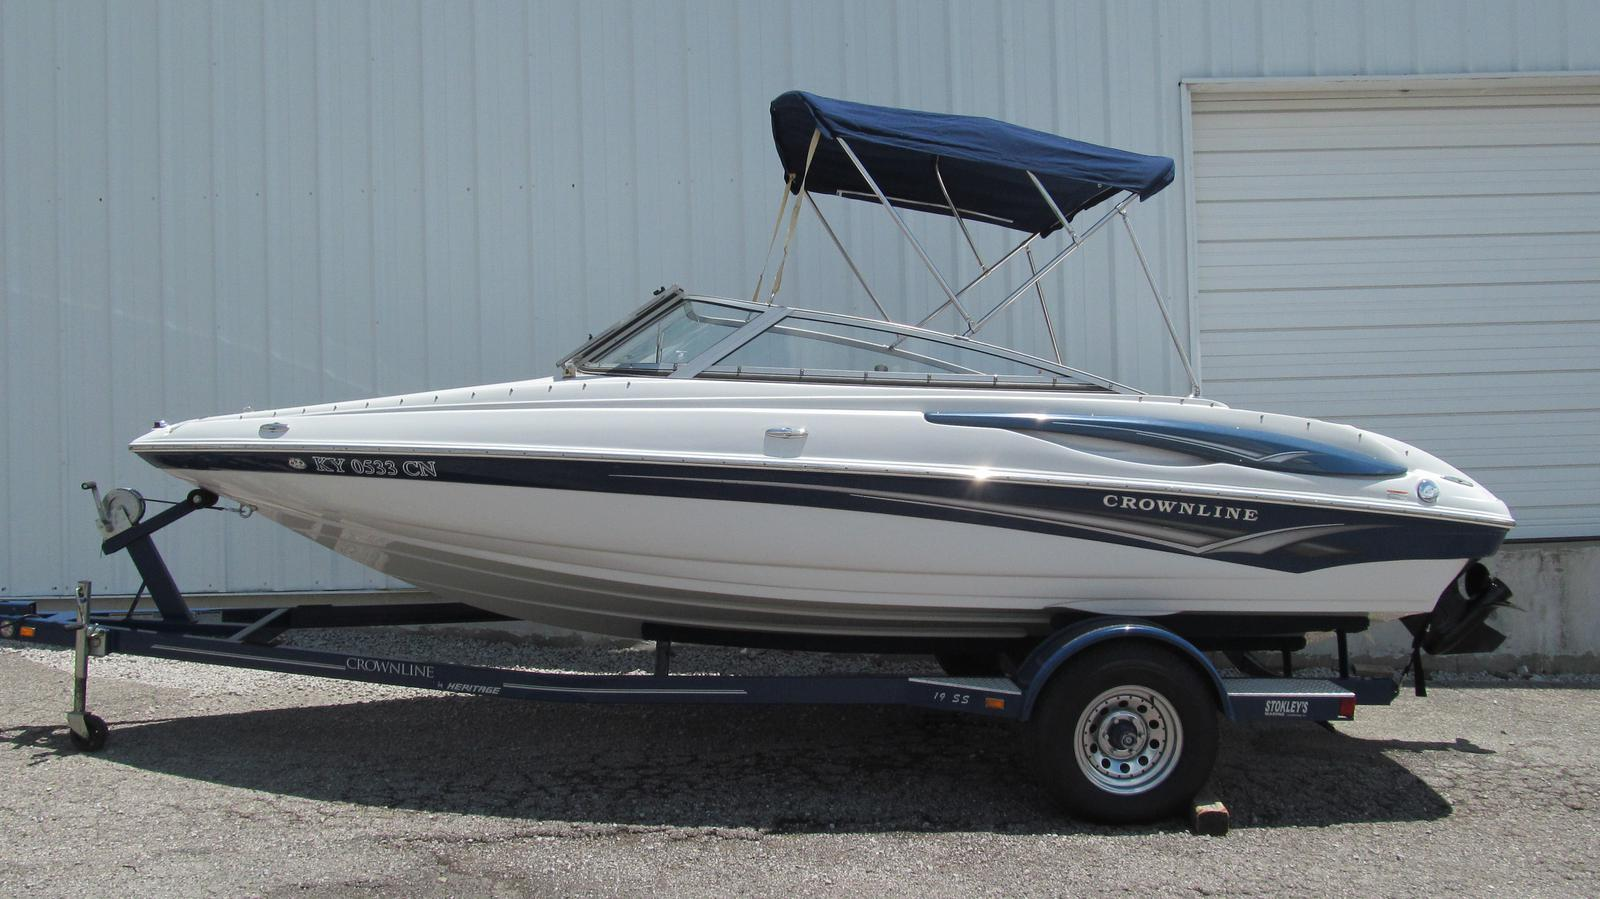 Crownline BOWRIDER 19 SS